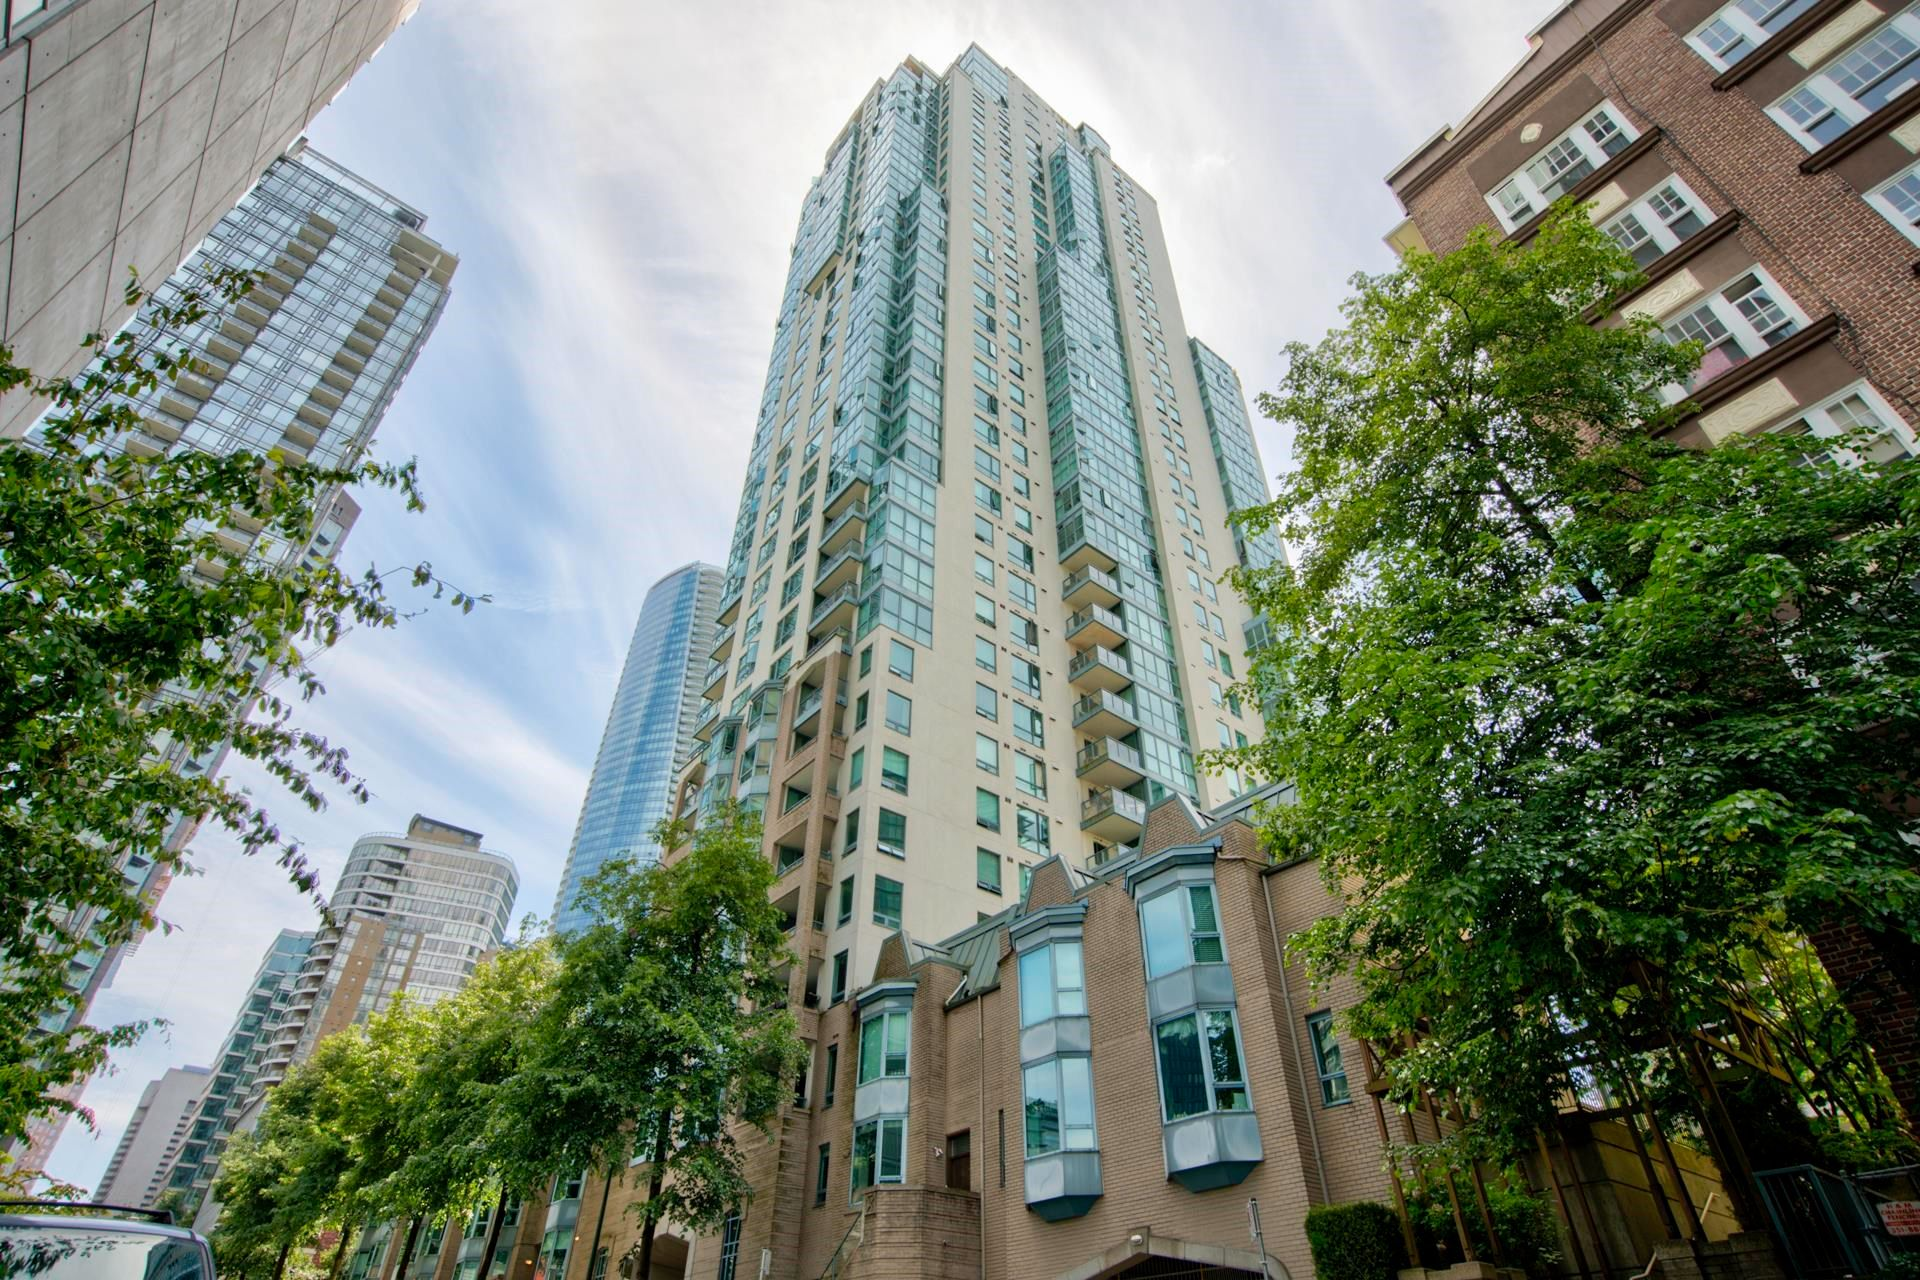 """Main Photo: 1903 1238 MELVILLE Street in Vancouver: Coal Harbour Condo for sale in """"Pointe Claire"""" (Vancouver West)  : MLS®# R2623127"""